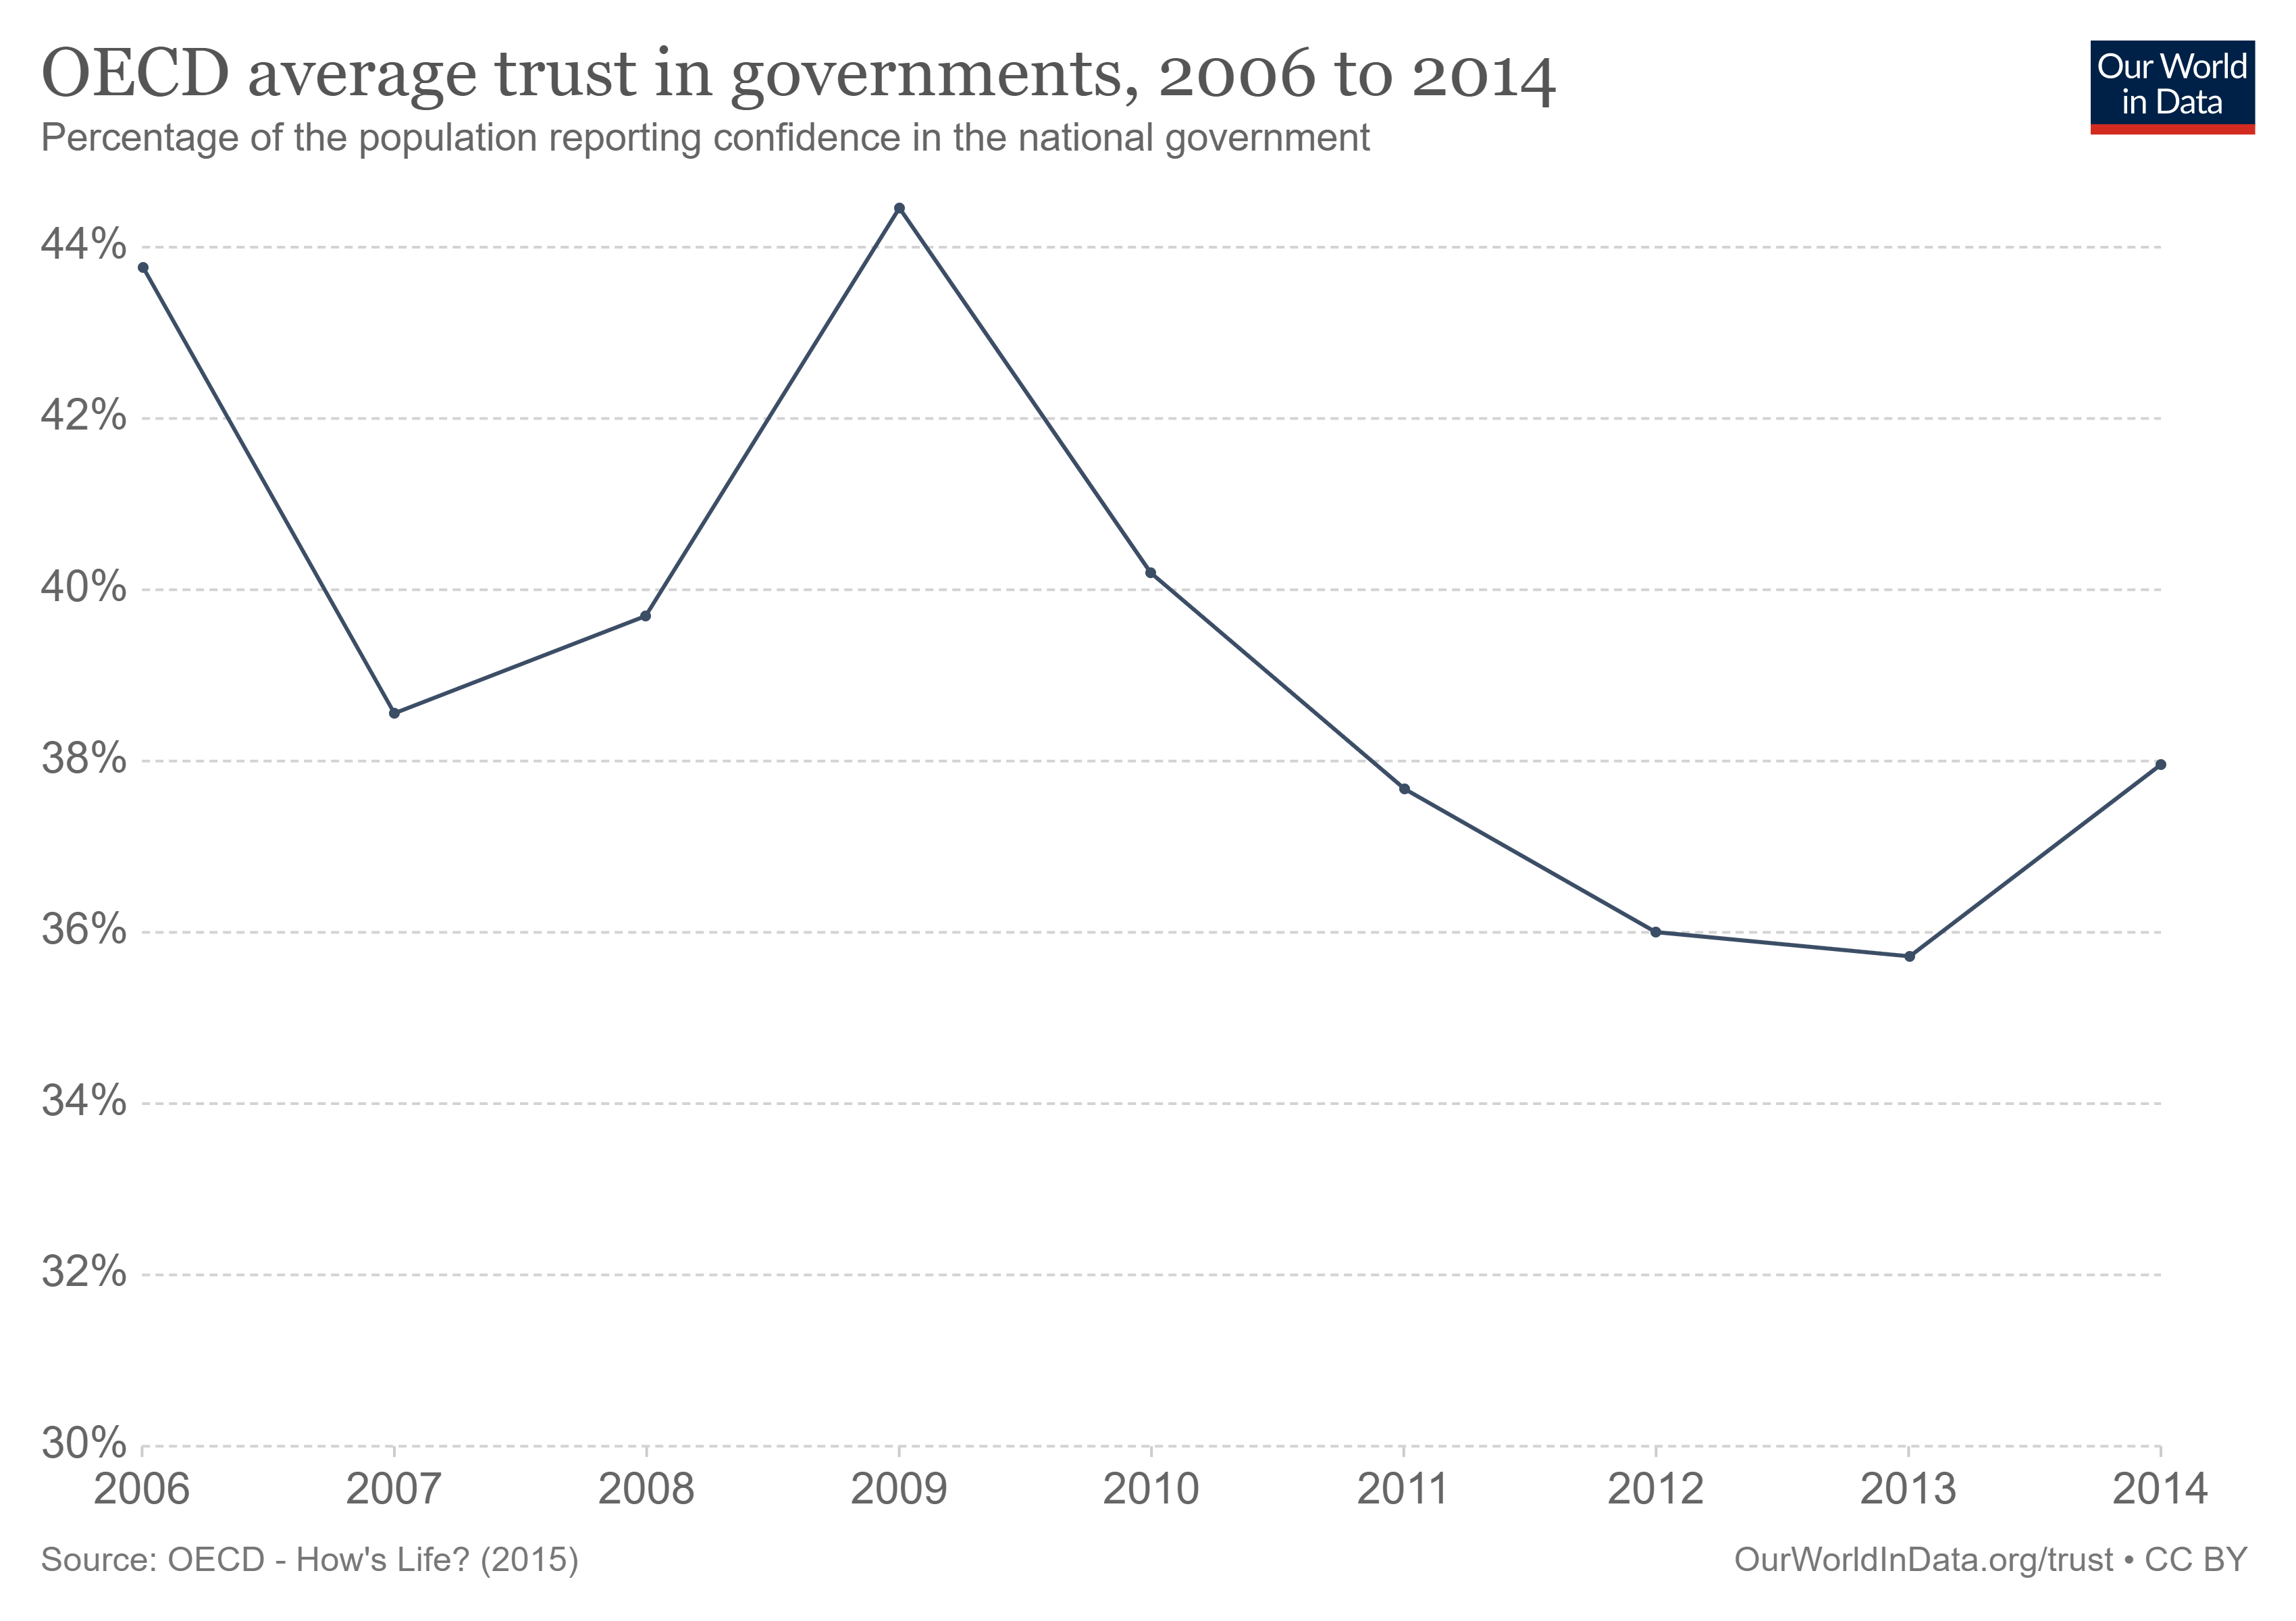 Trust in OECD governments has been going down in recent years